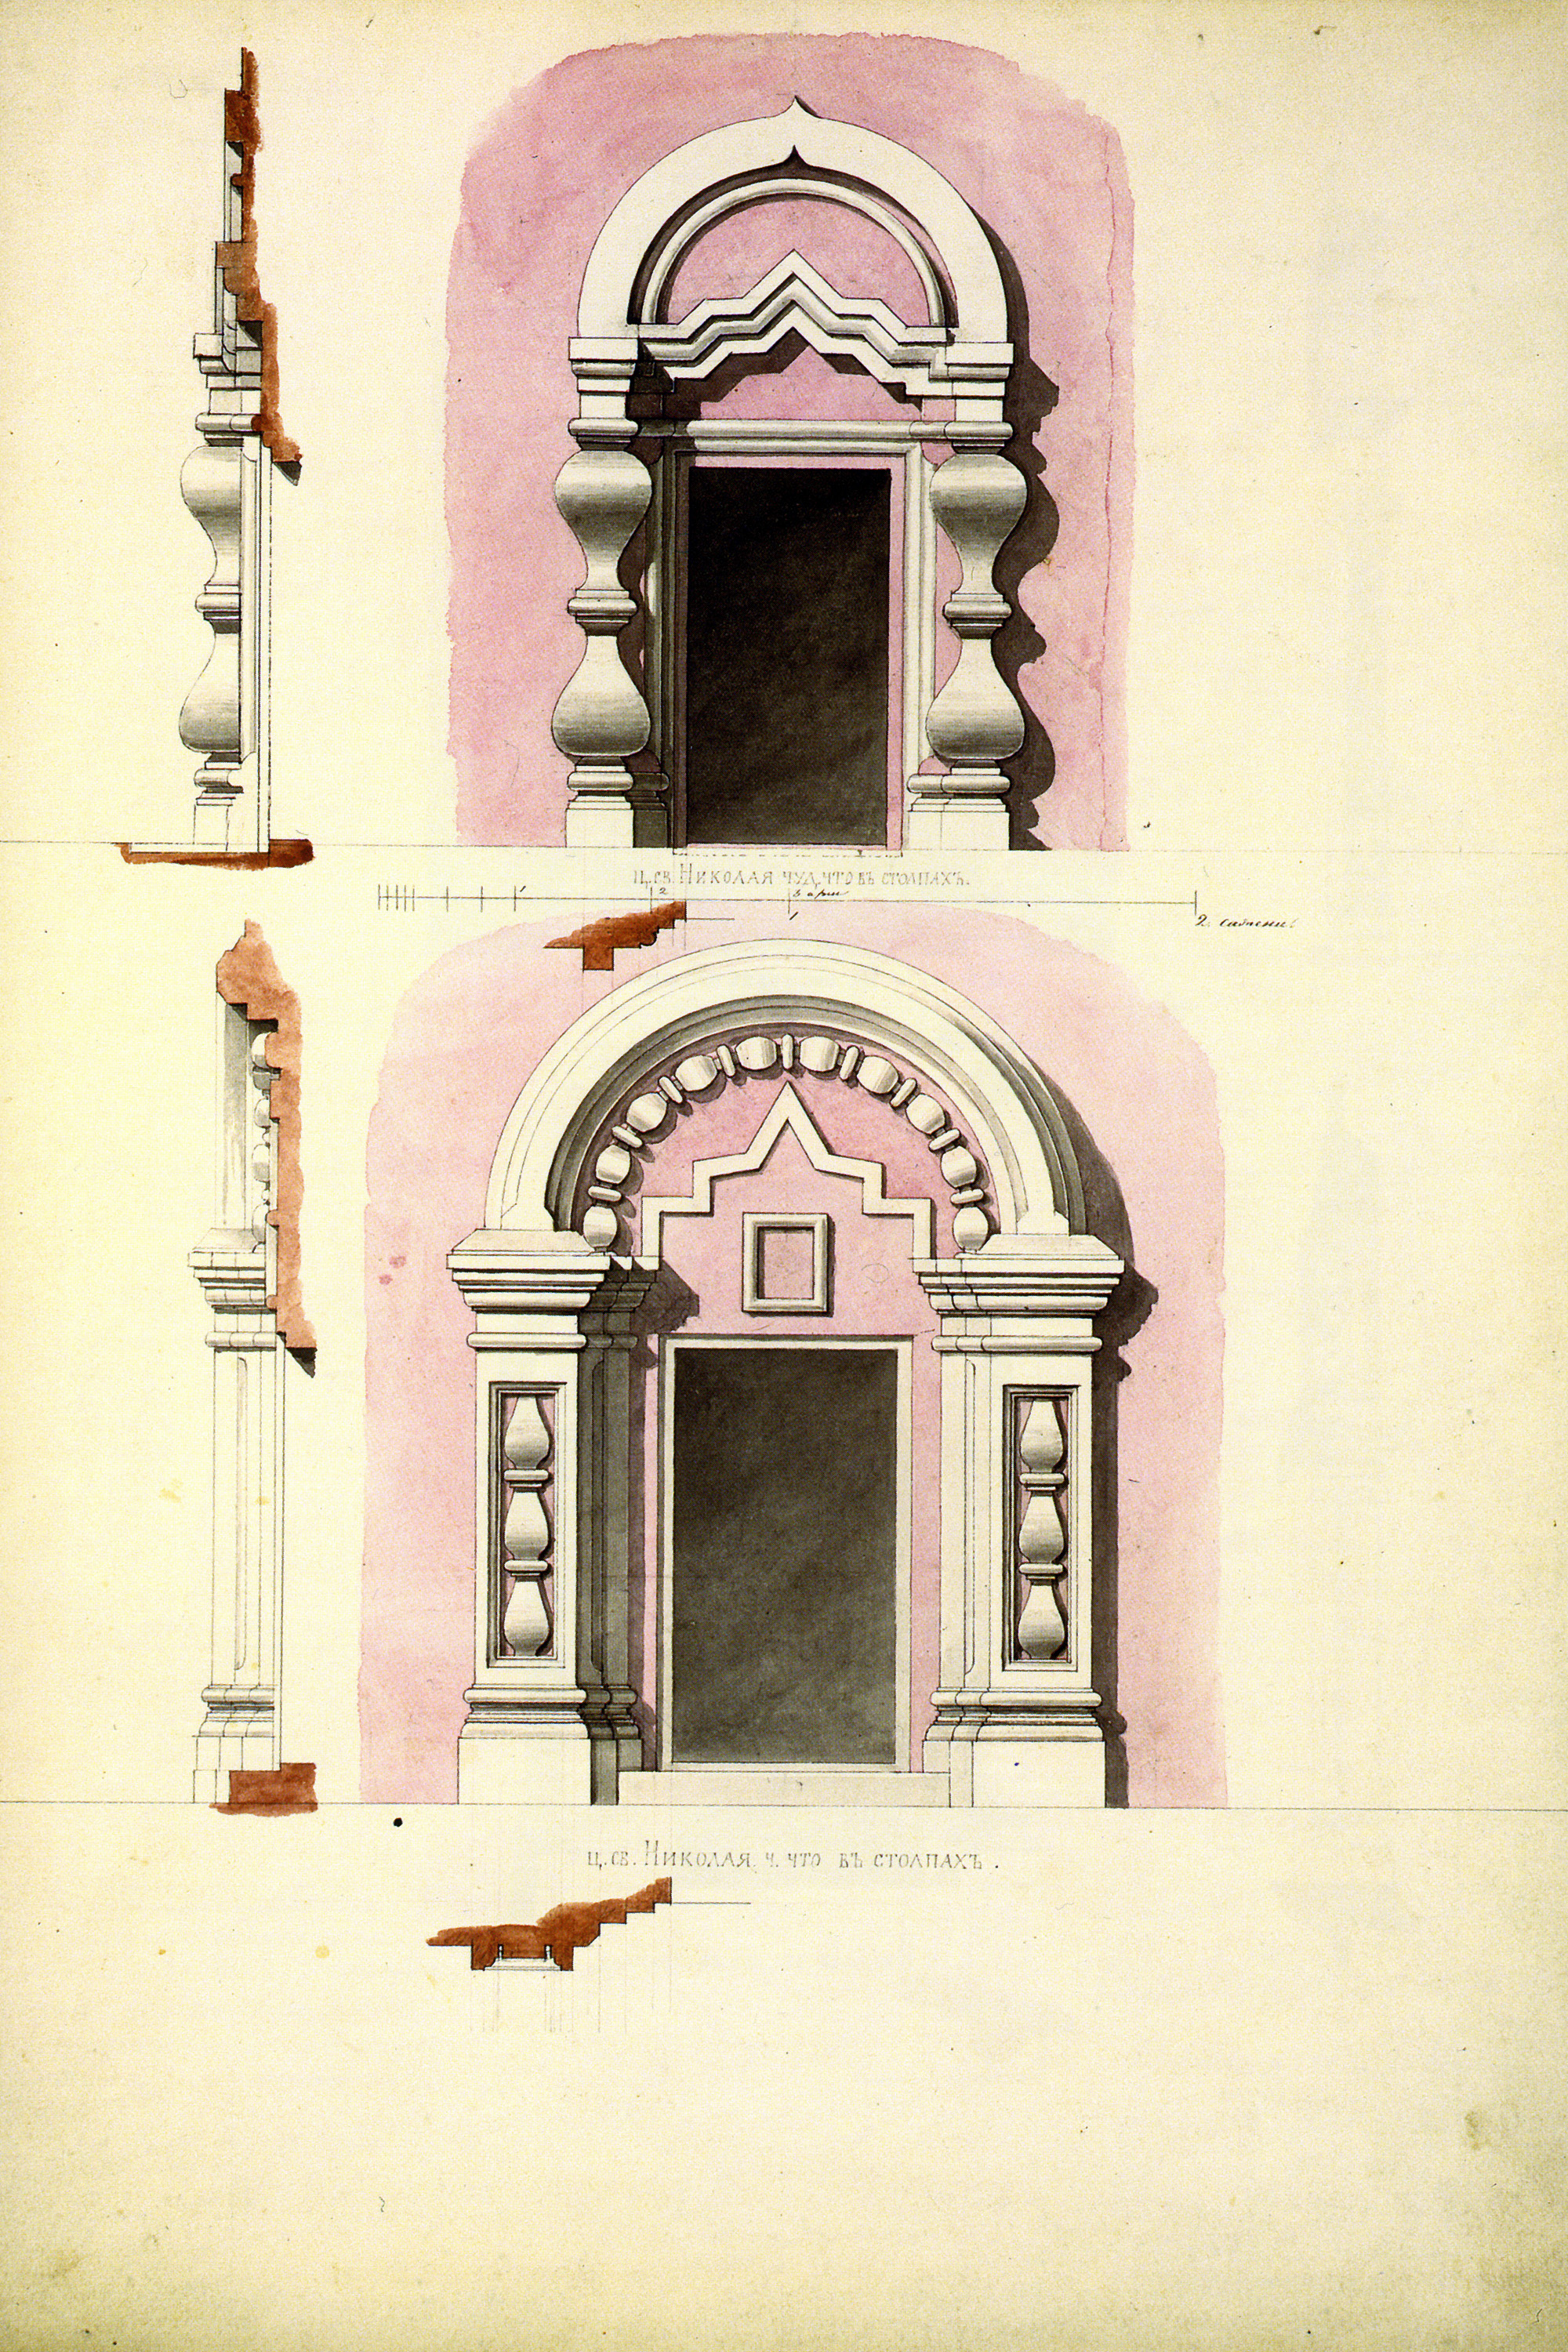 Muscovite_Window_and_Portals_17th_century_06